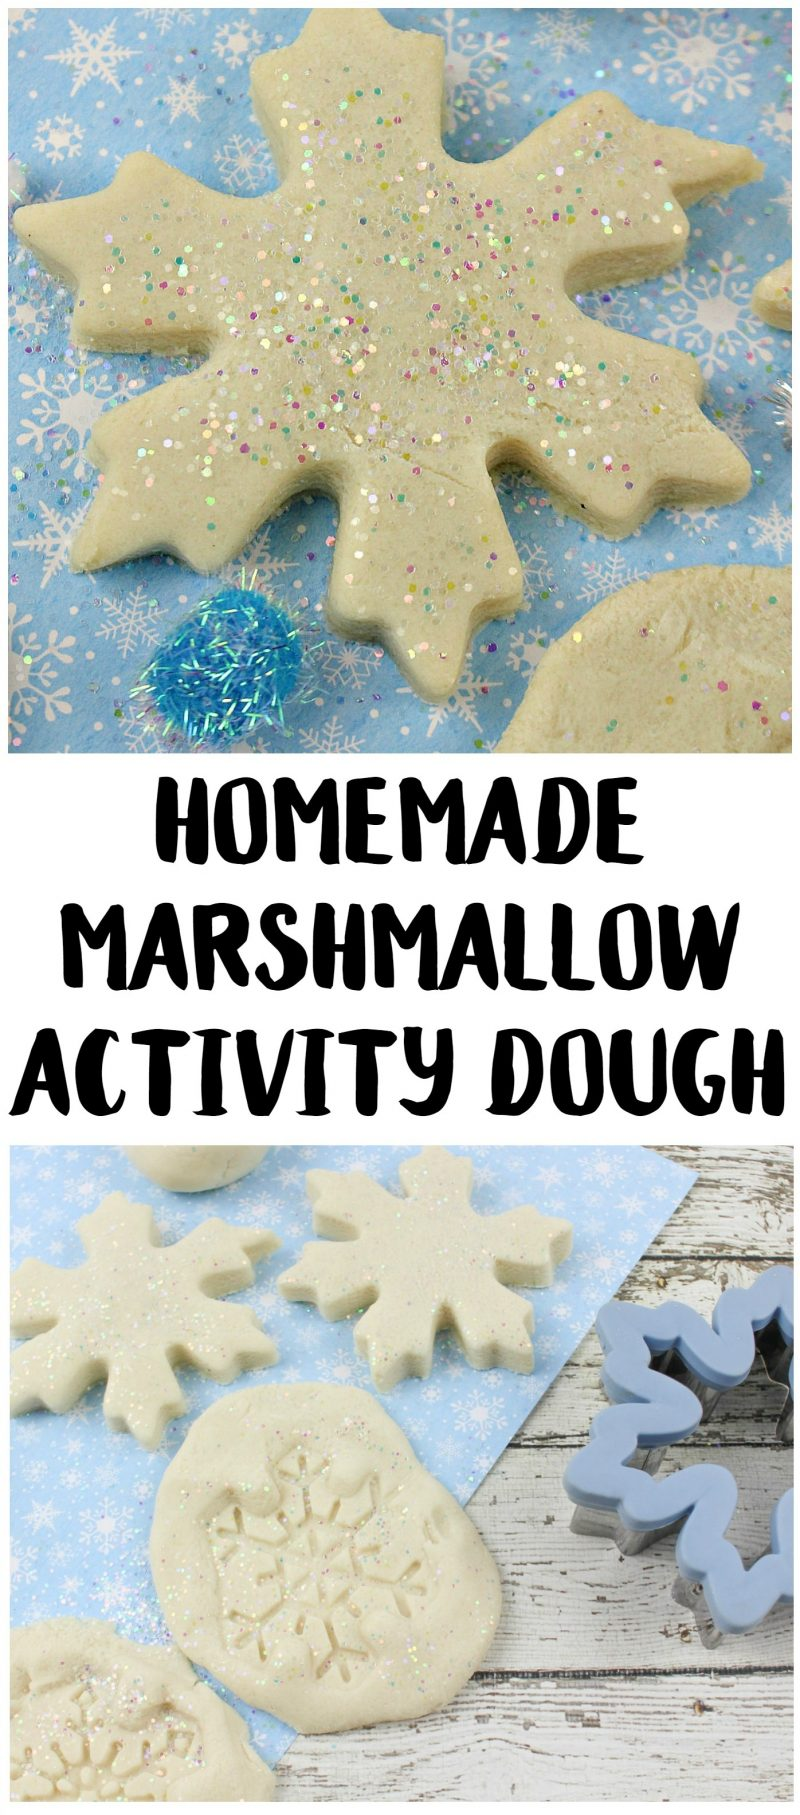 Kids and toddlers alike will love this fun DIY Marshmallow Scented Activity Dough! It's a super soft playdough recipe that's crazy easy to make {without cream of tartar- just a few simple ingredients!} and it's no cook so the kids can even help!